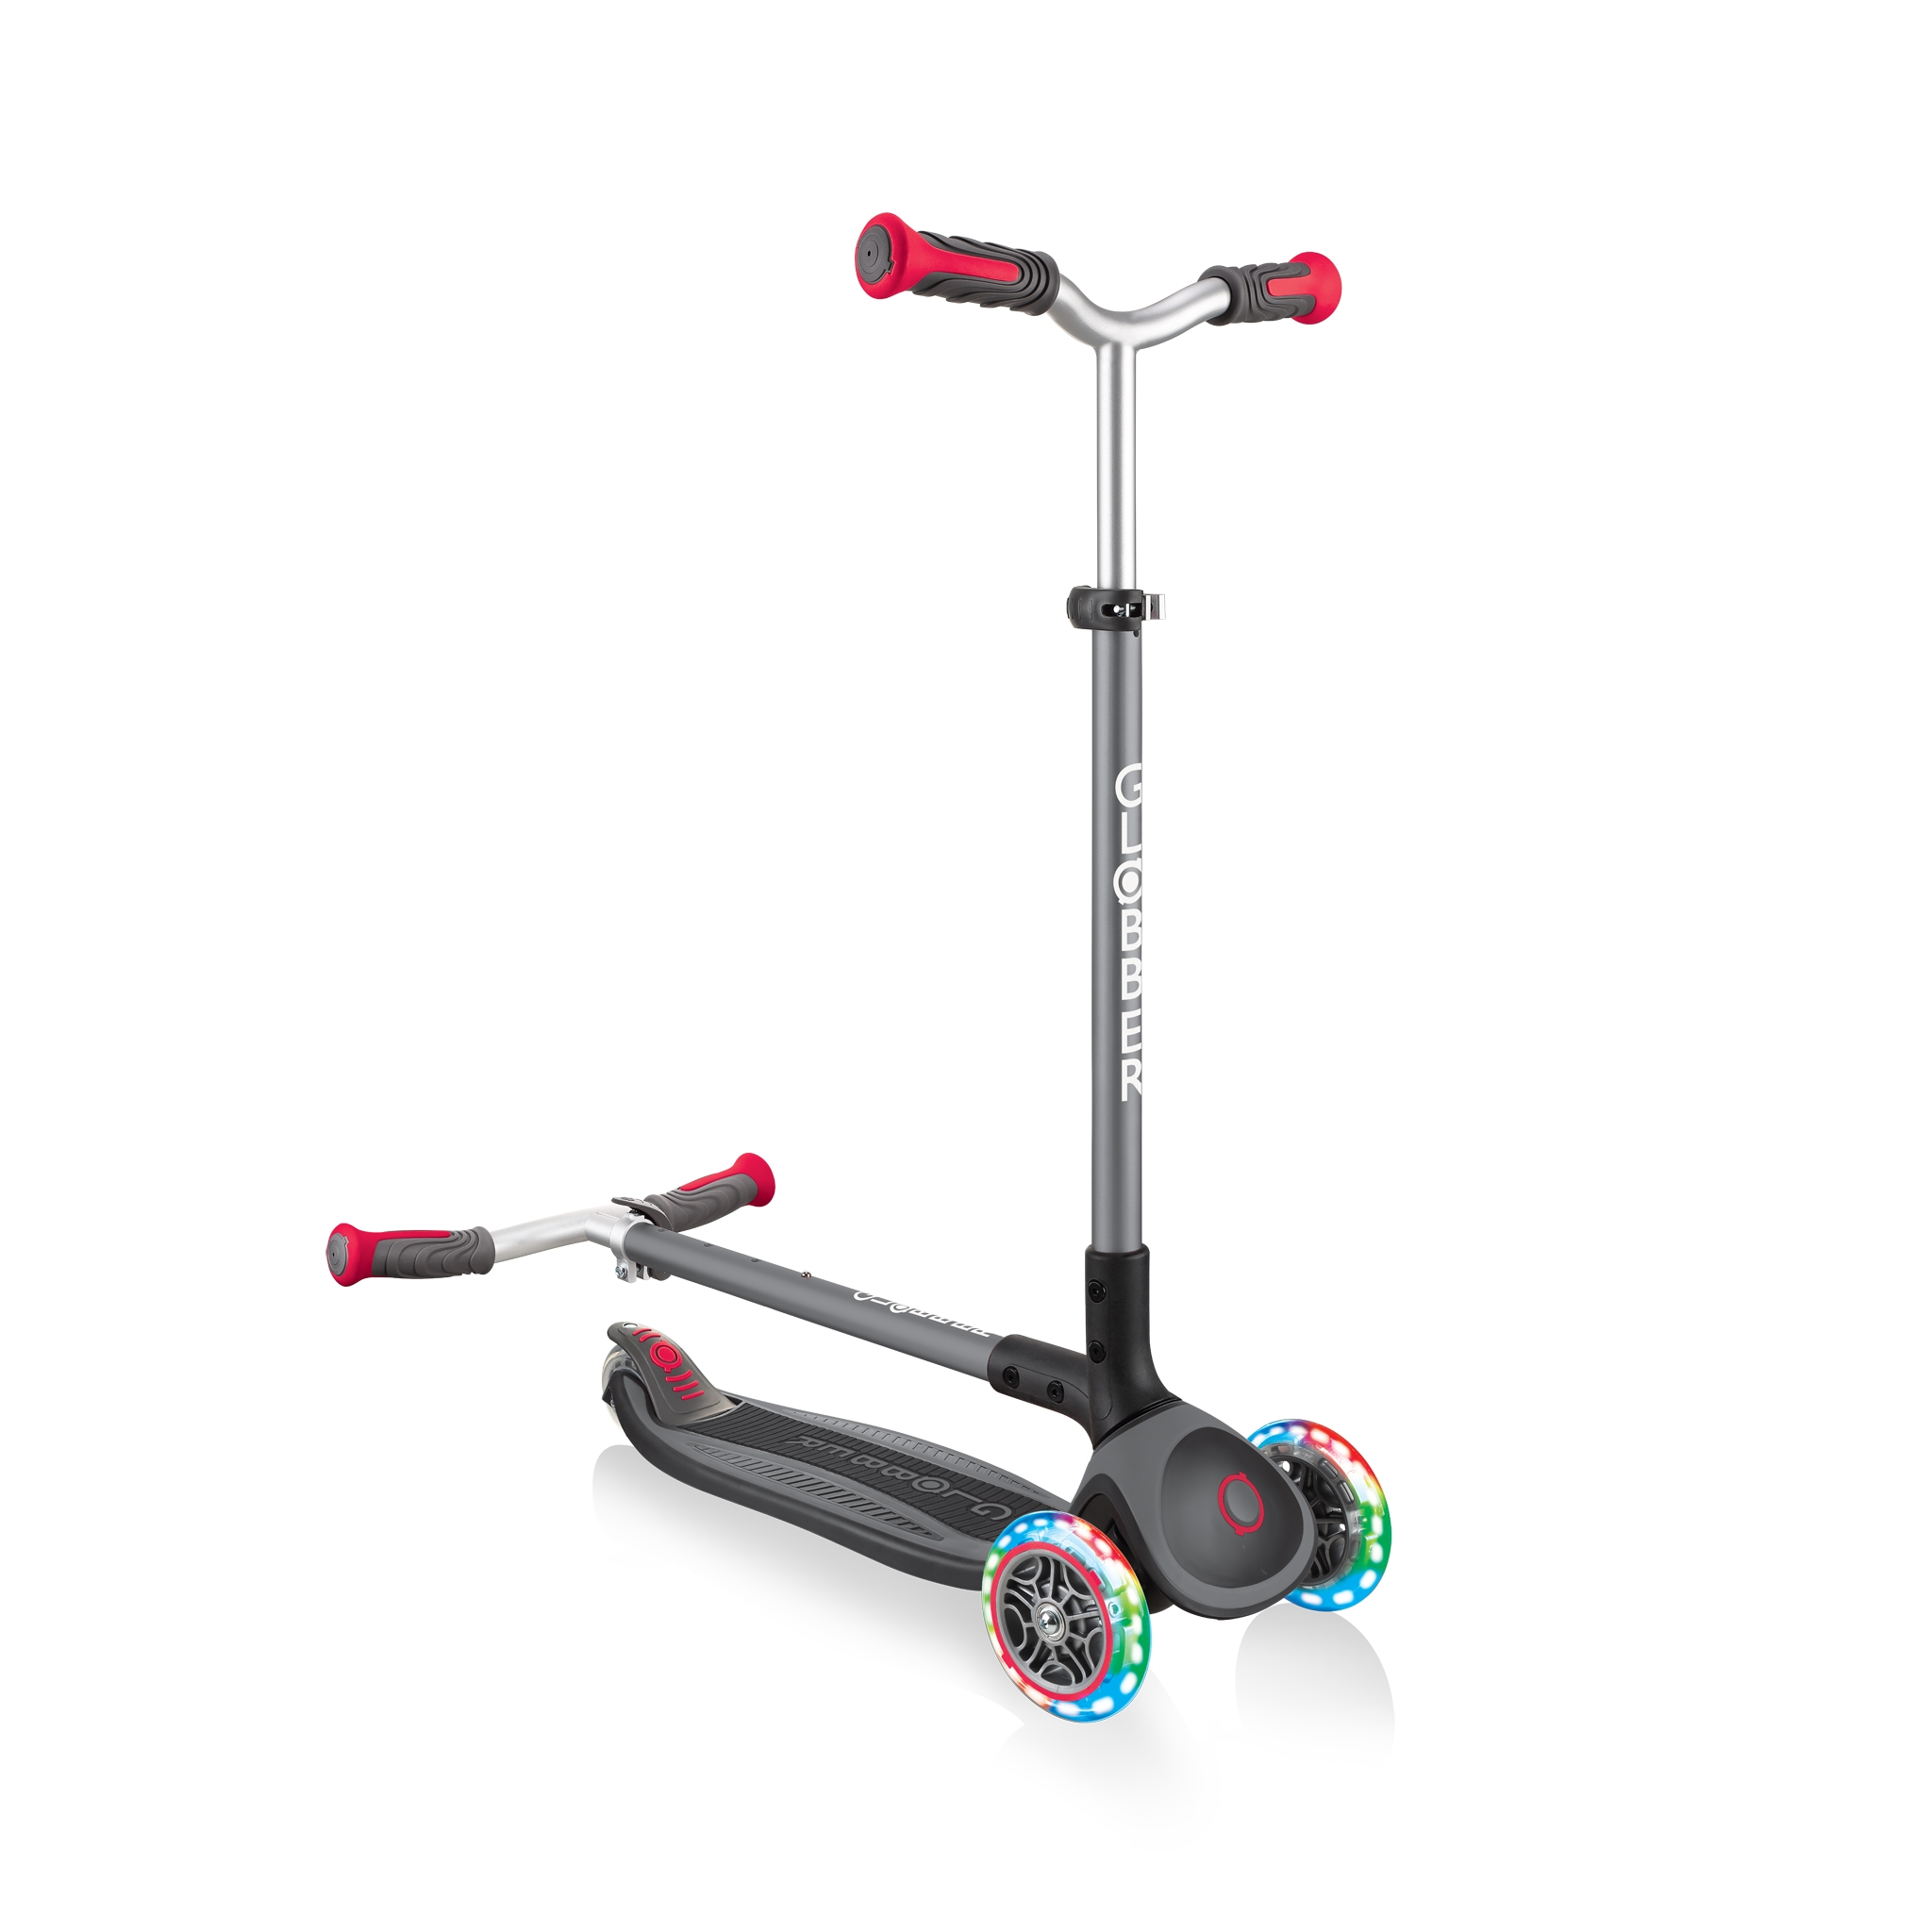 Globber-MASTER-LIGHTS-convenient-foldable-3-wheel-light-up-scooter-for-kids-with-patented-folding-system_black-red 3